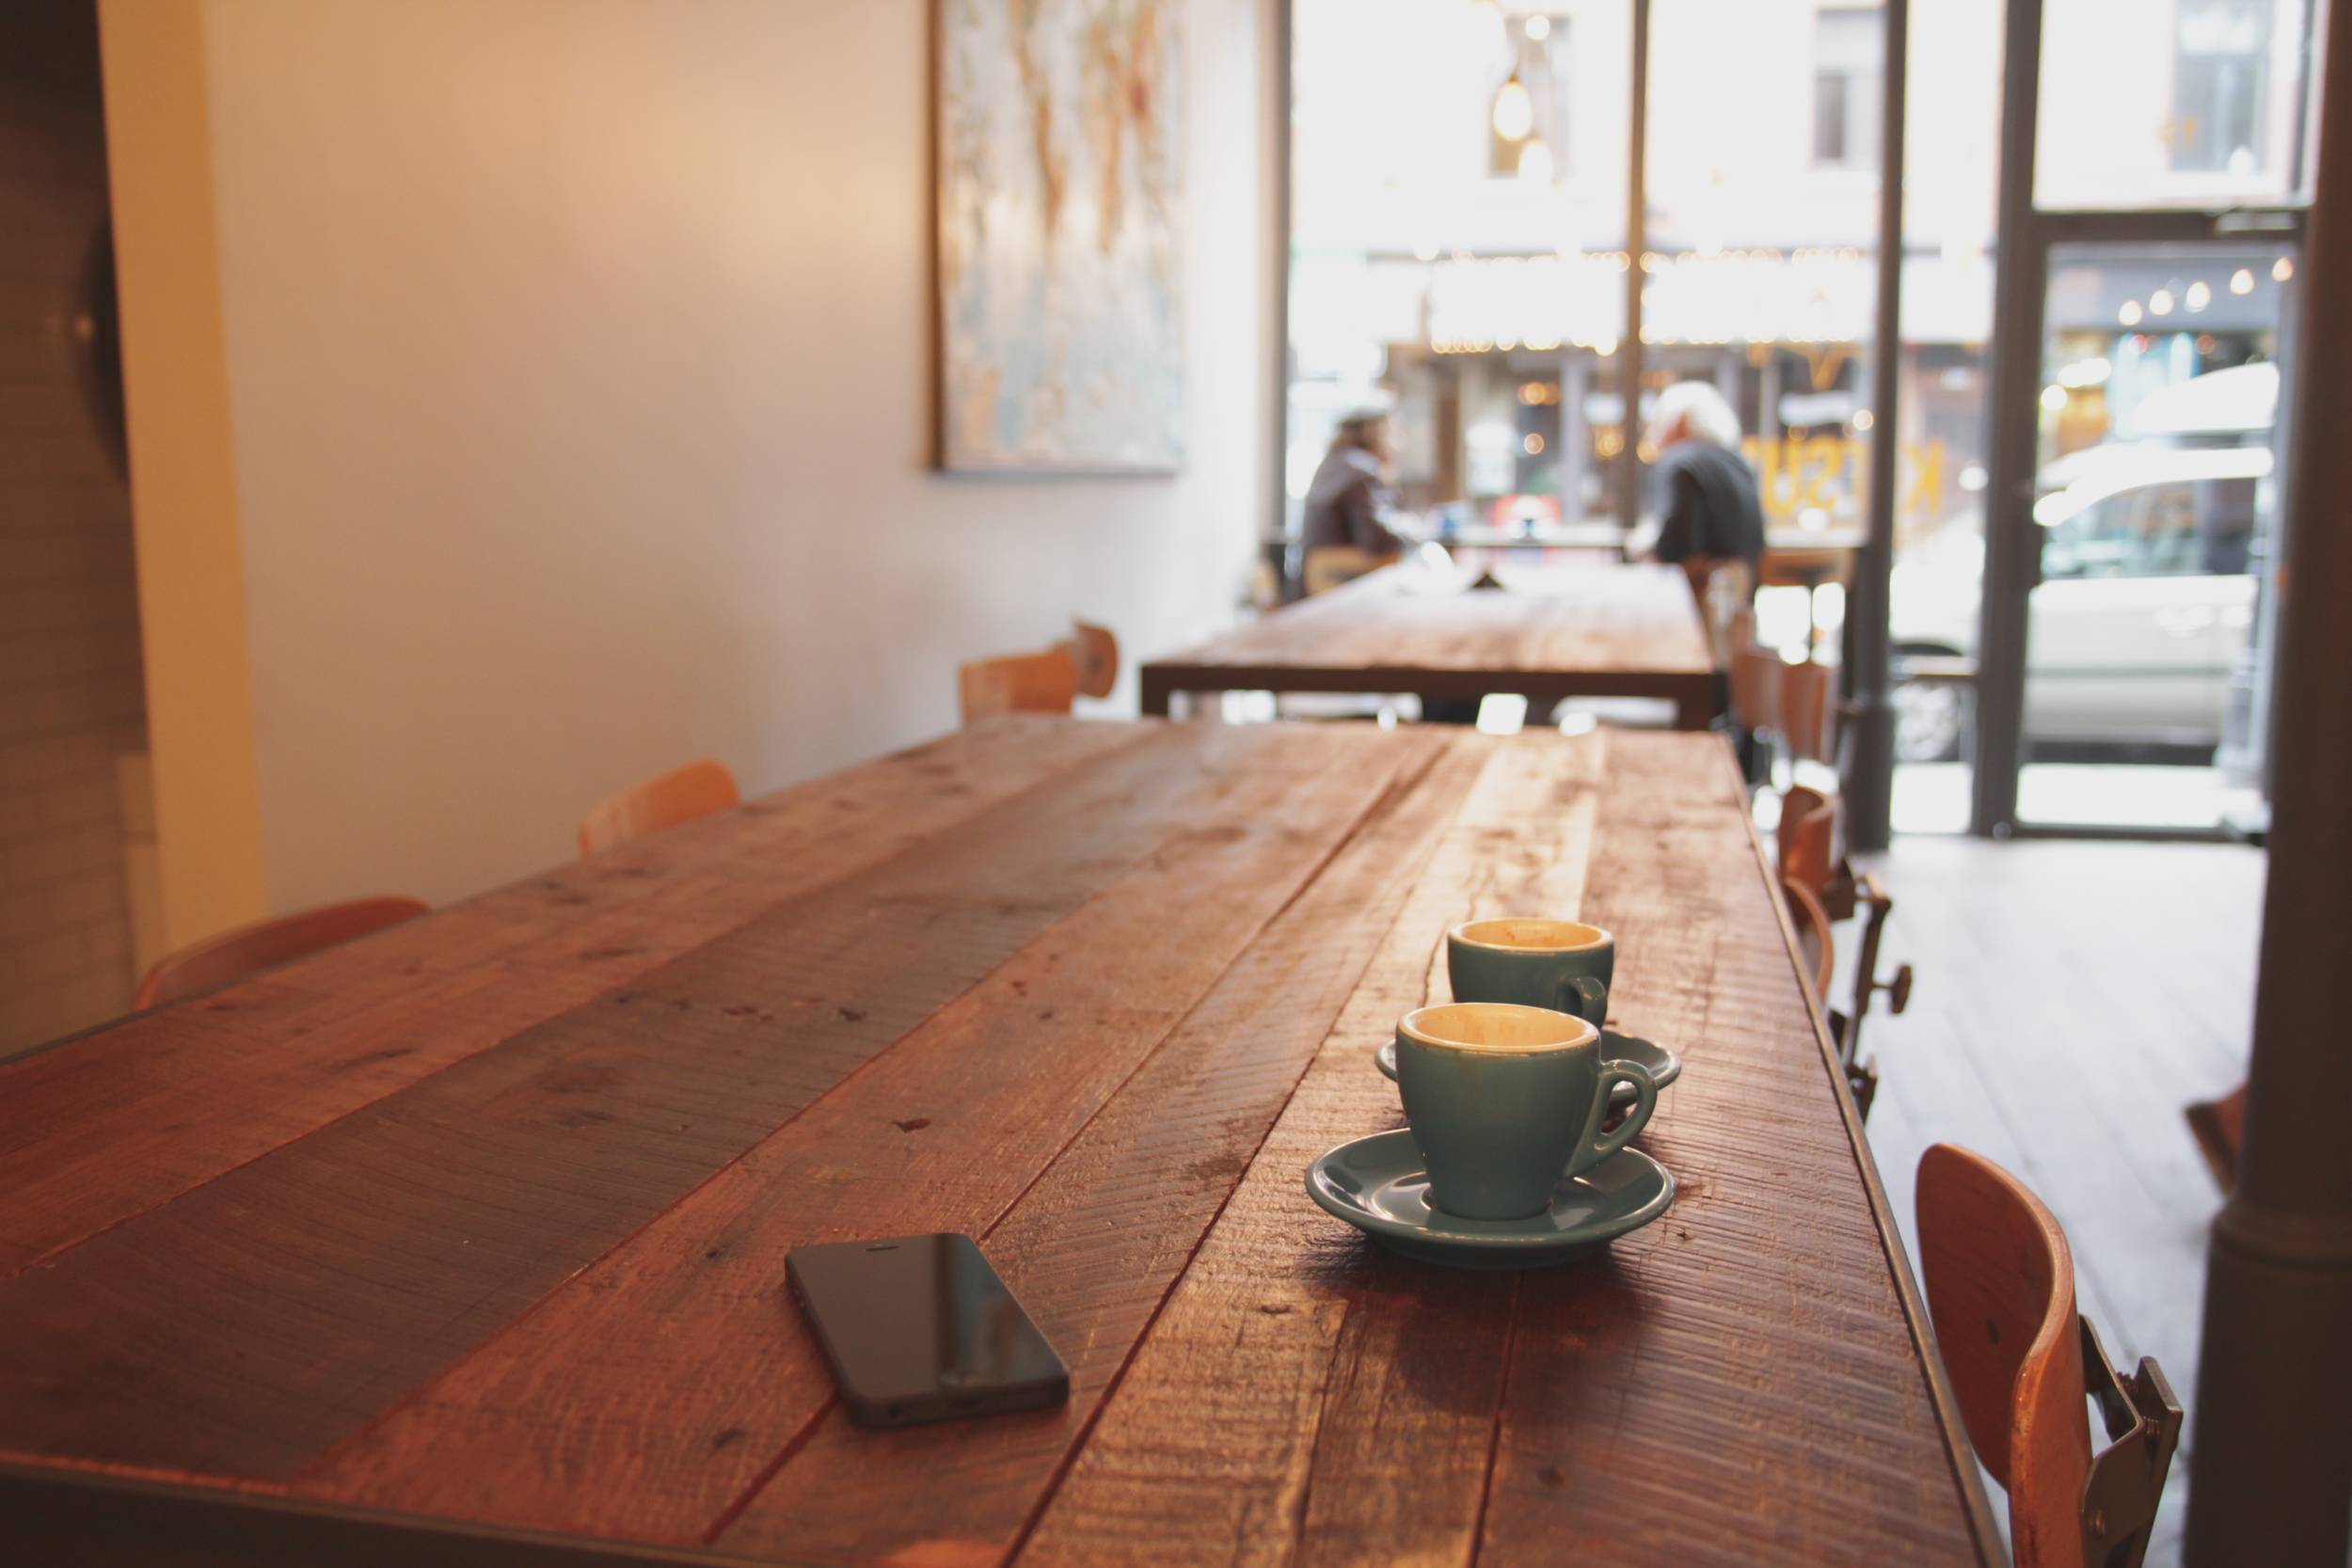 Sircle POS can be used in coffee shops!